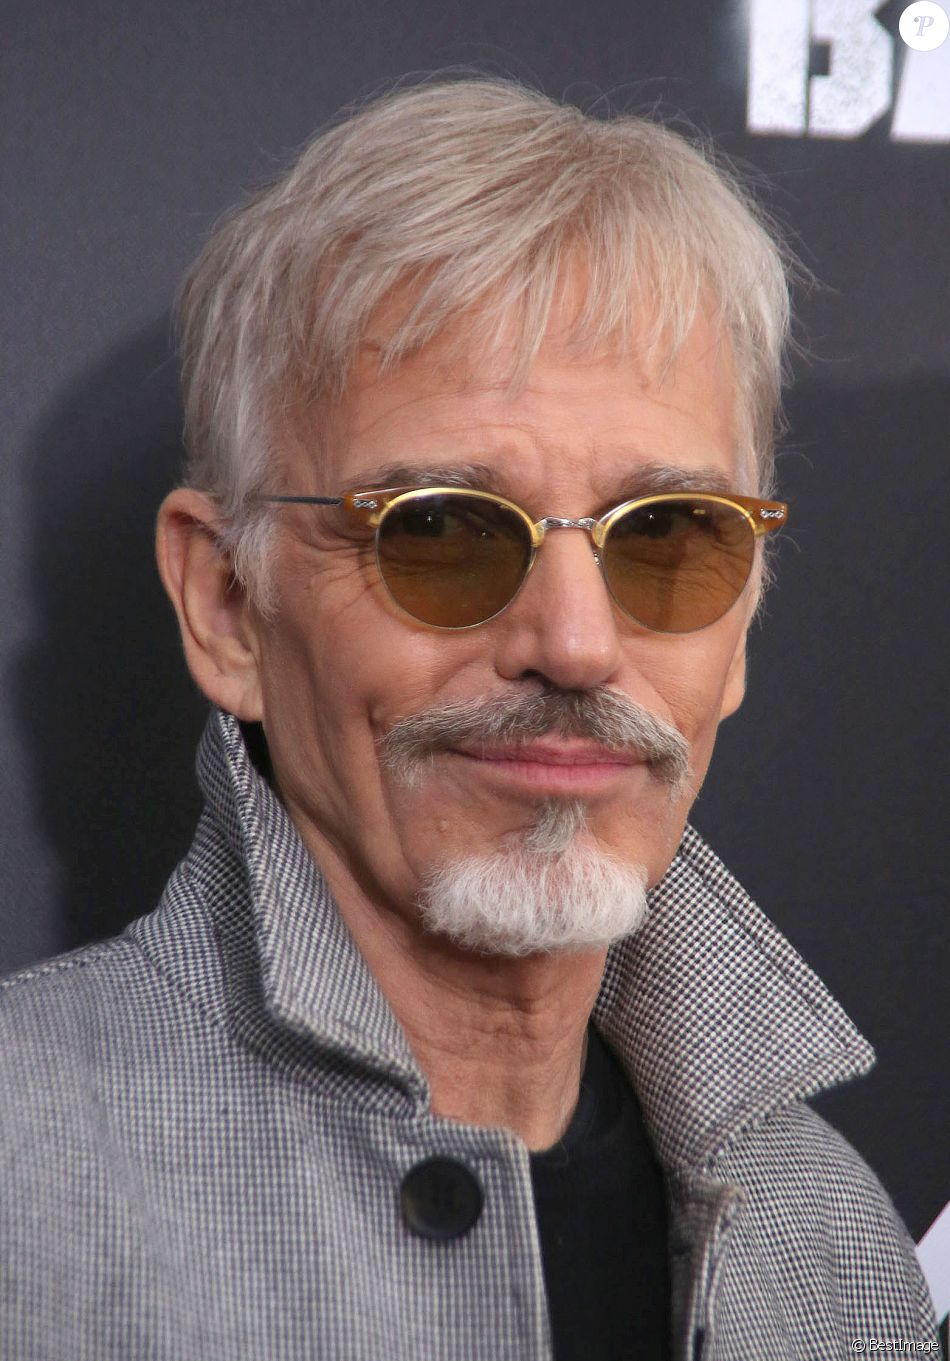 Billy Bob Thornton à la première de ''Bad Santa 2'' à New York, le 15 novembre 2016 © Sonia Moskowitz/Globe Photos via Zuma/Bestimage